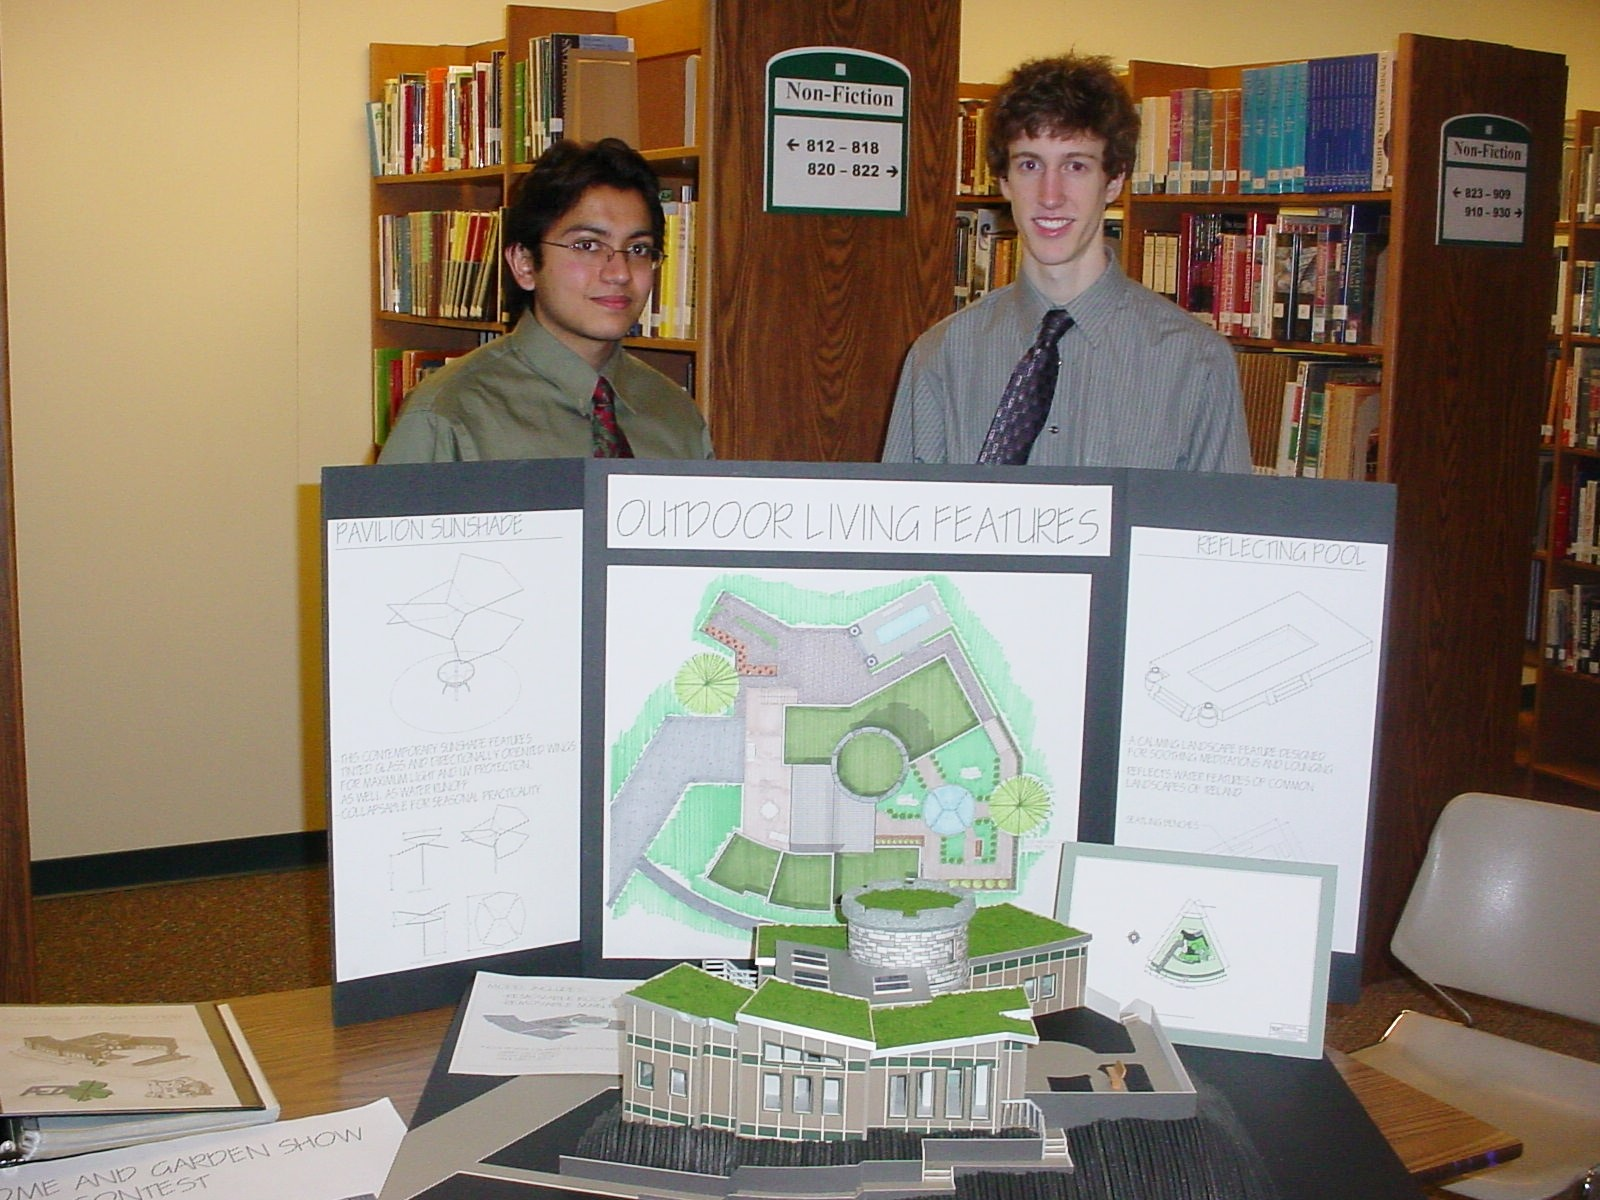 Rakesh Patel and Mark Pothier - winners of the 2007 Student Model Home Design Contest